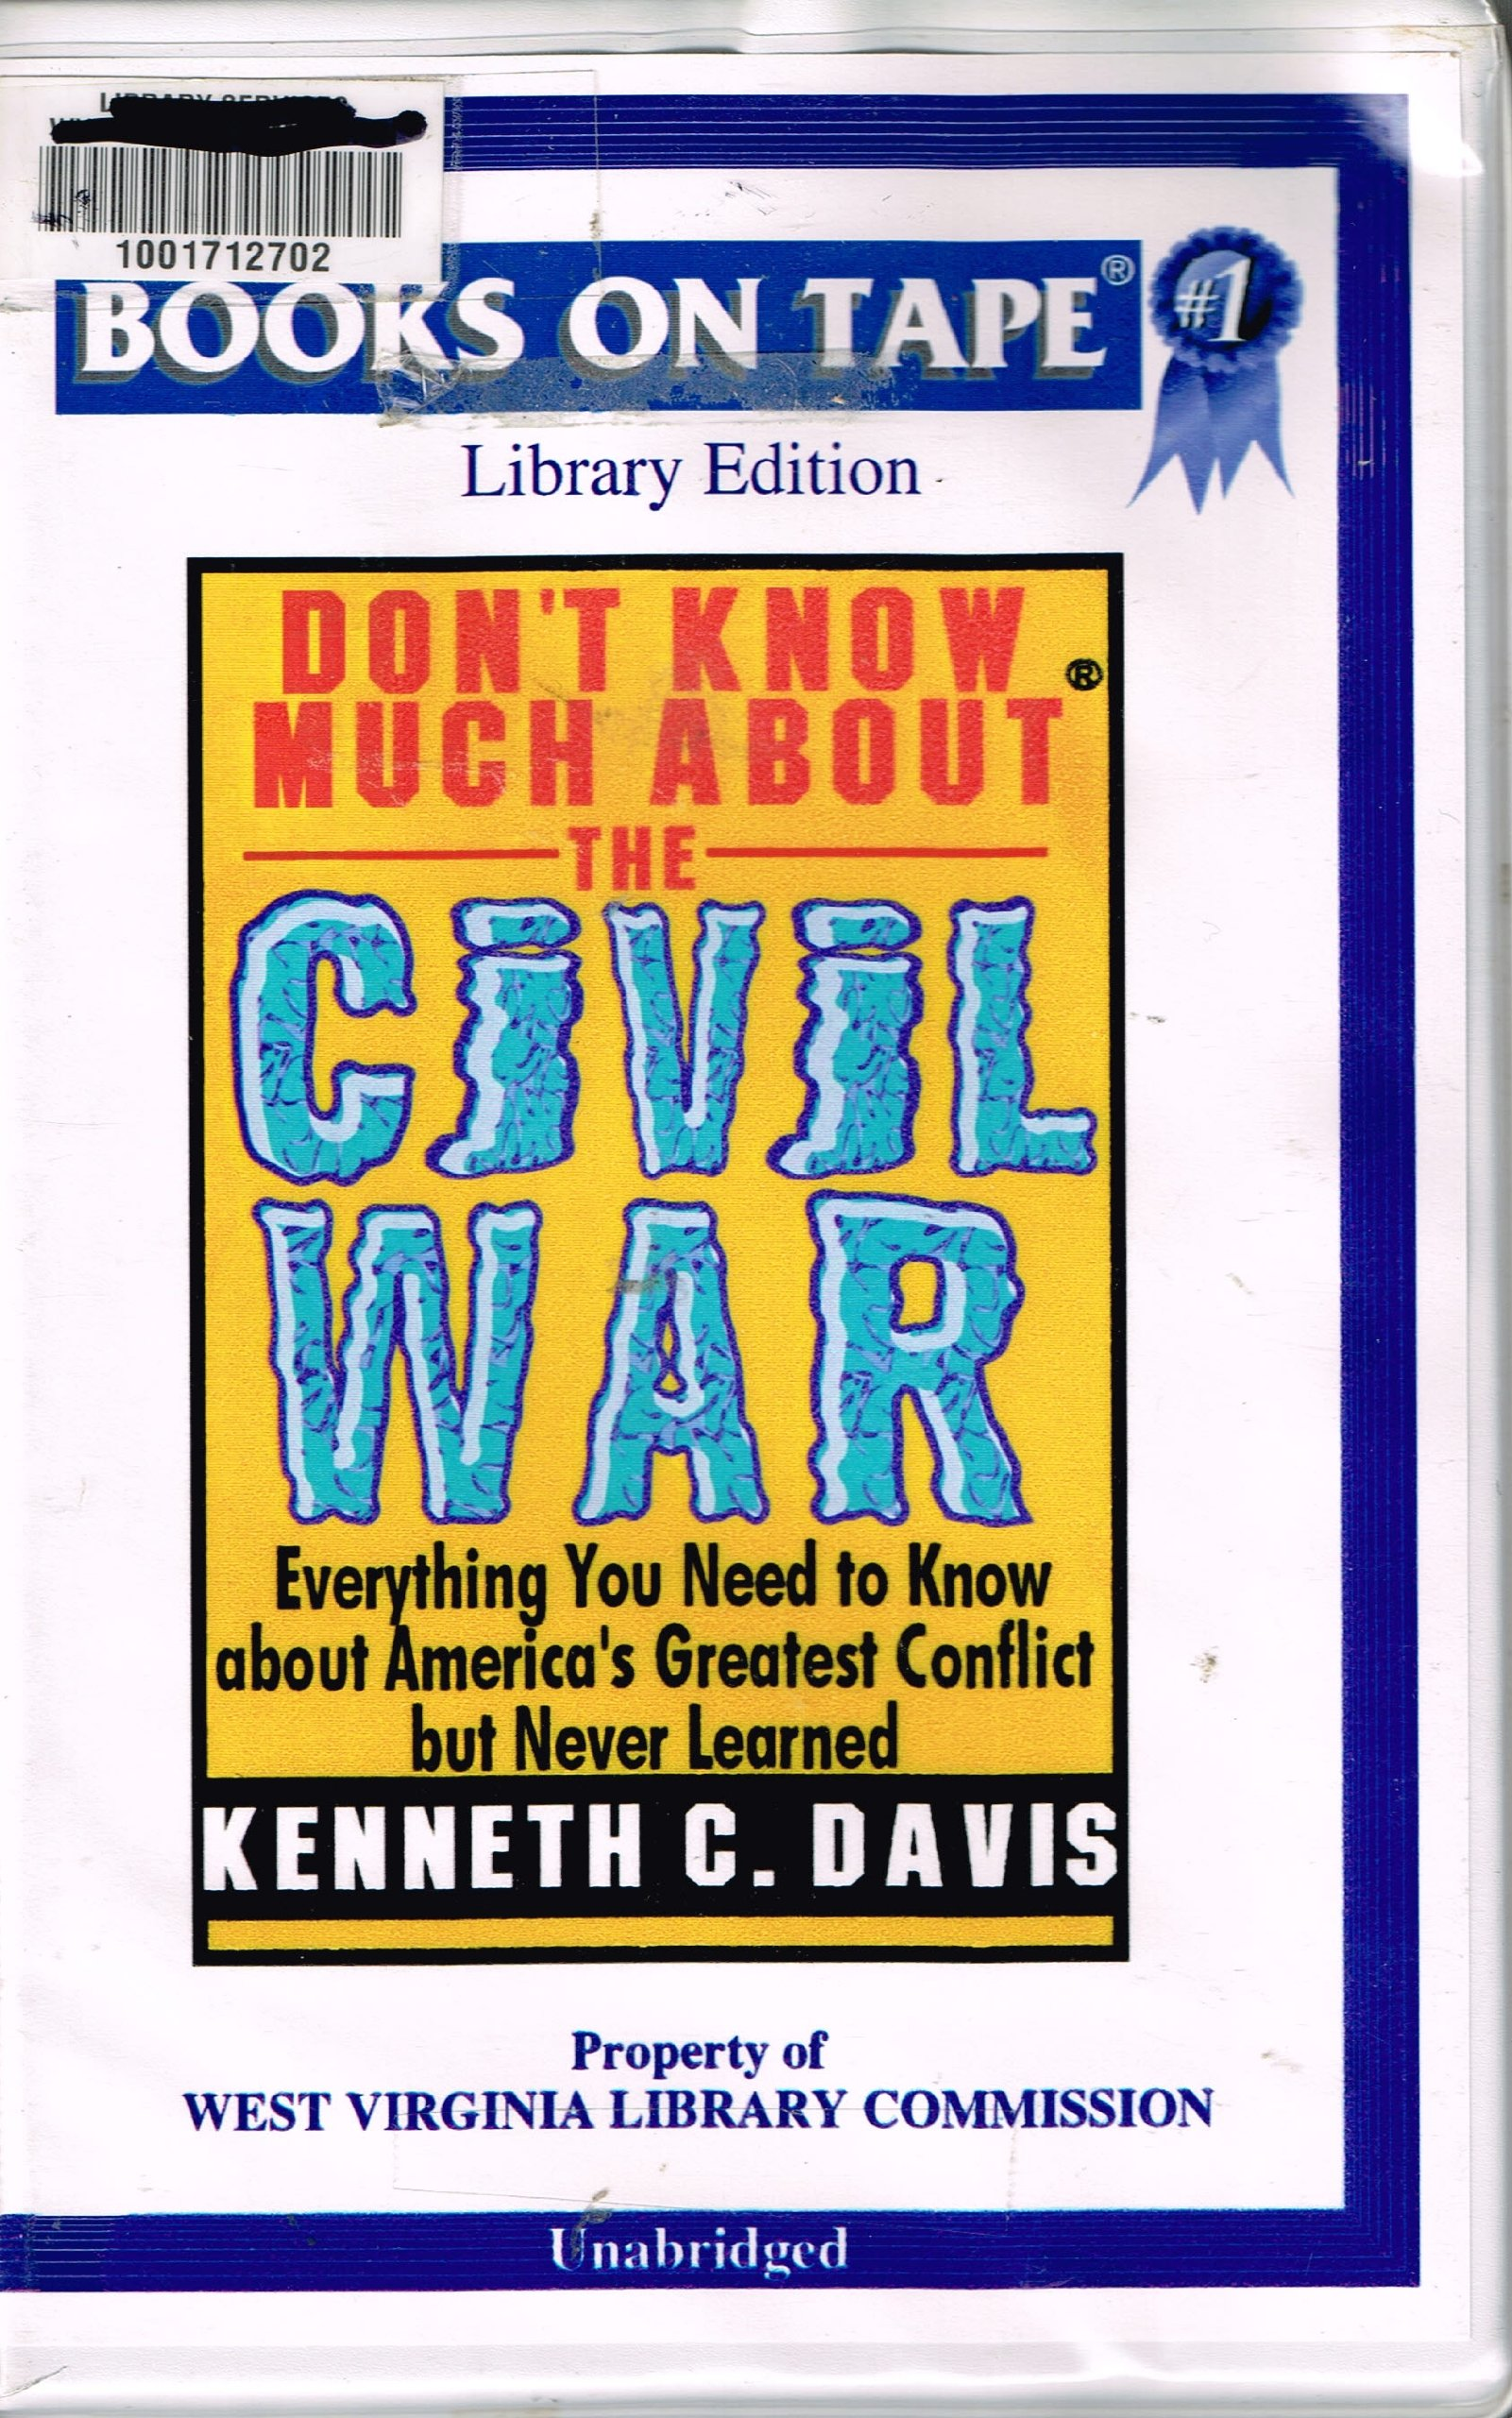 Don't Know Much About the Civil War: Everything You Need to Know About America's Greatest Conflict but Never Learned [UNABRIDGED]